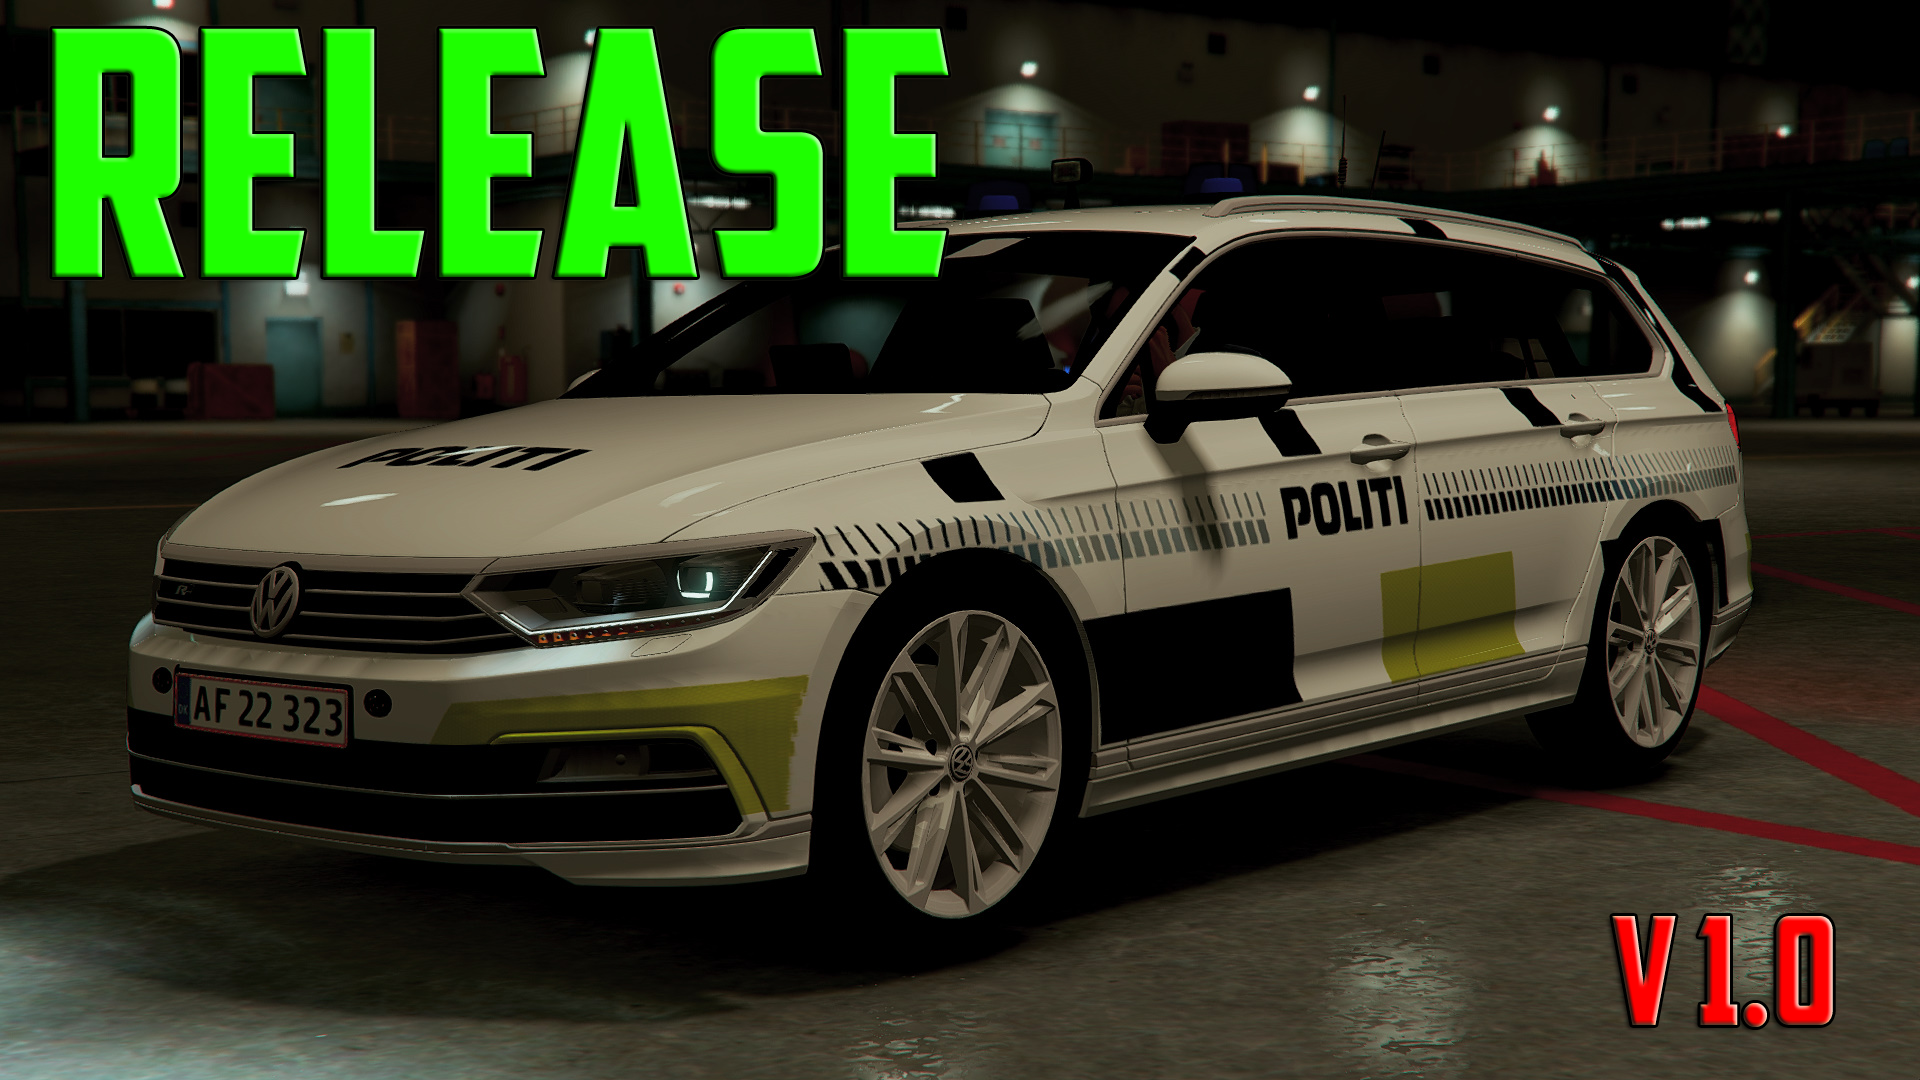 2015 volkswagen passat r line danish police template gta5. Black Bedroom Furniture Sets. Home Design Ideas